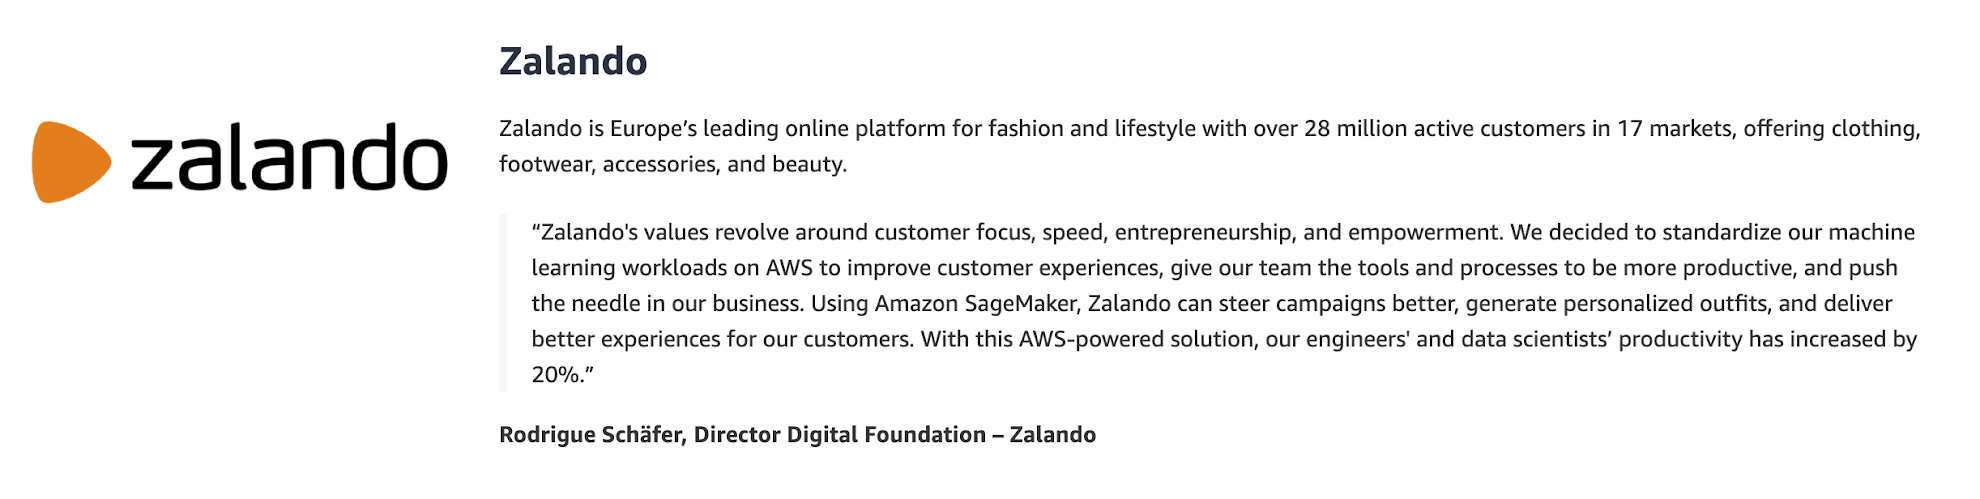 Using Amazon SageMaker, Zalando can steer campaigns better, generate personalized outfits, and deliver better experiences for our customers.